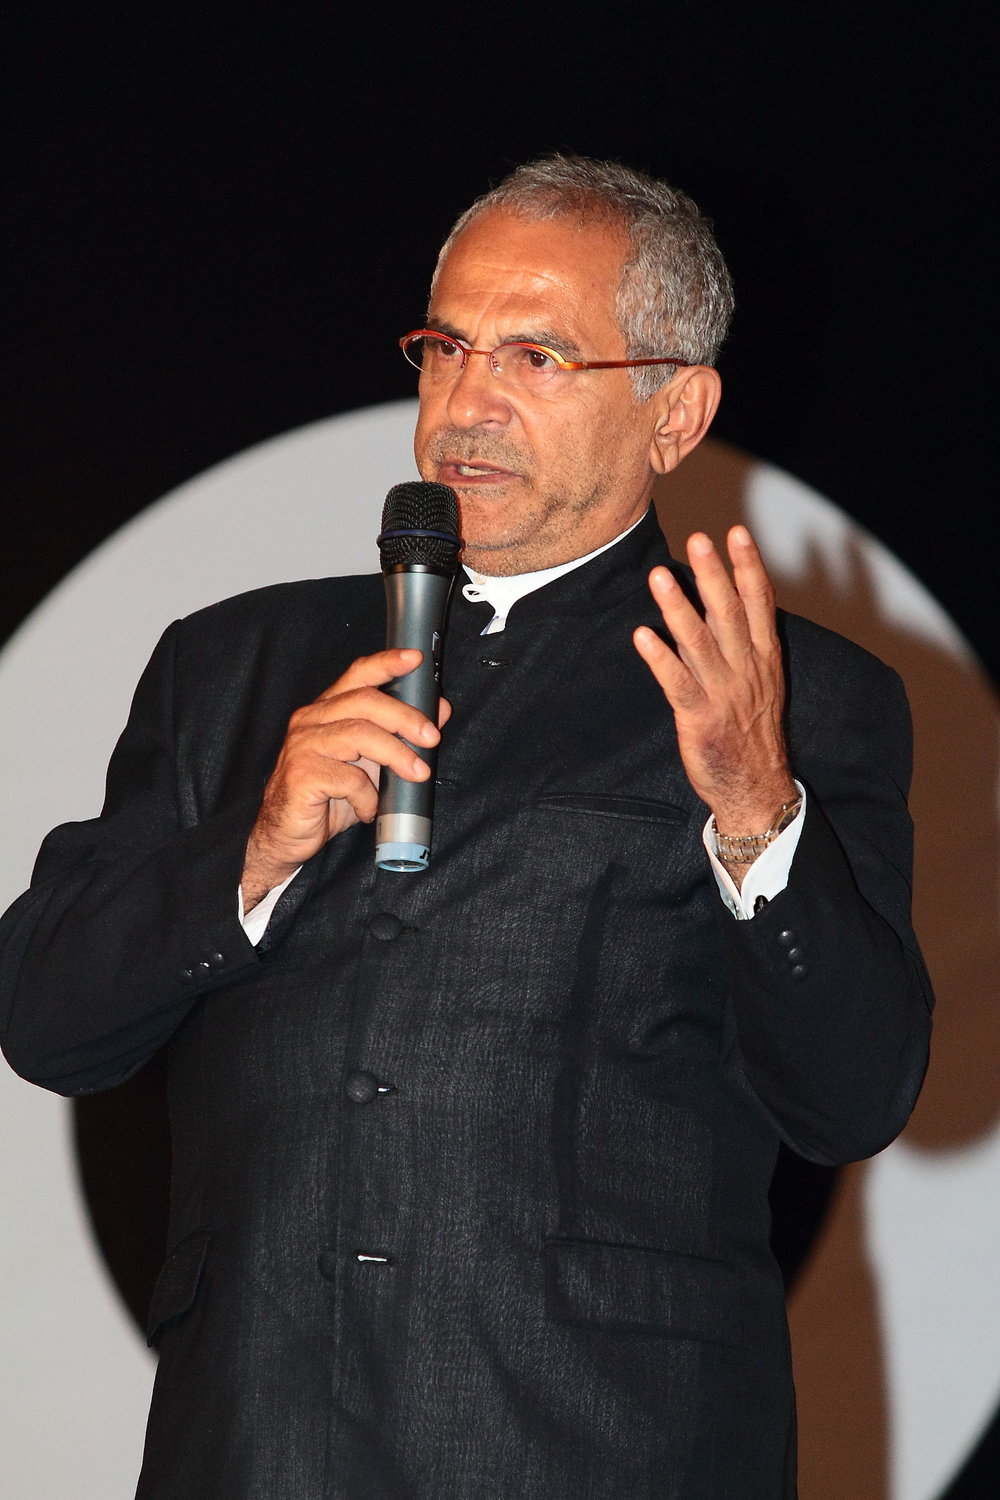 qi-global-2011-driving-innovation-culture-031-jose-ramos-horta.jpg